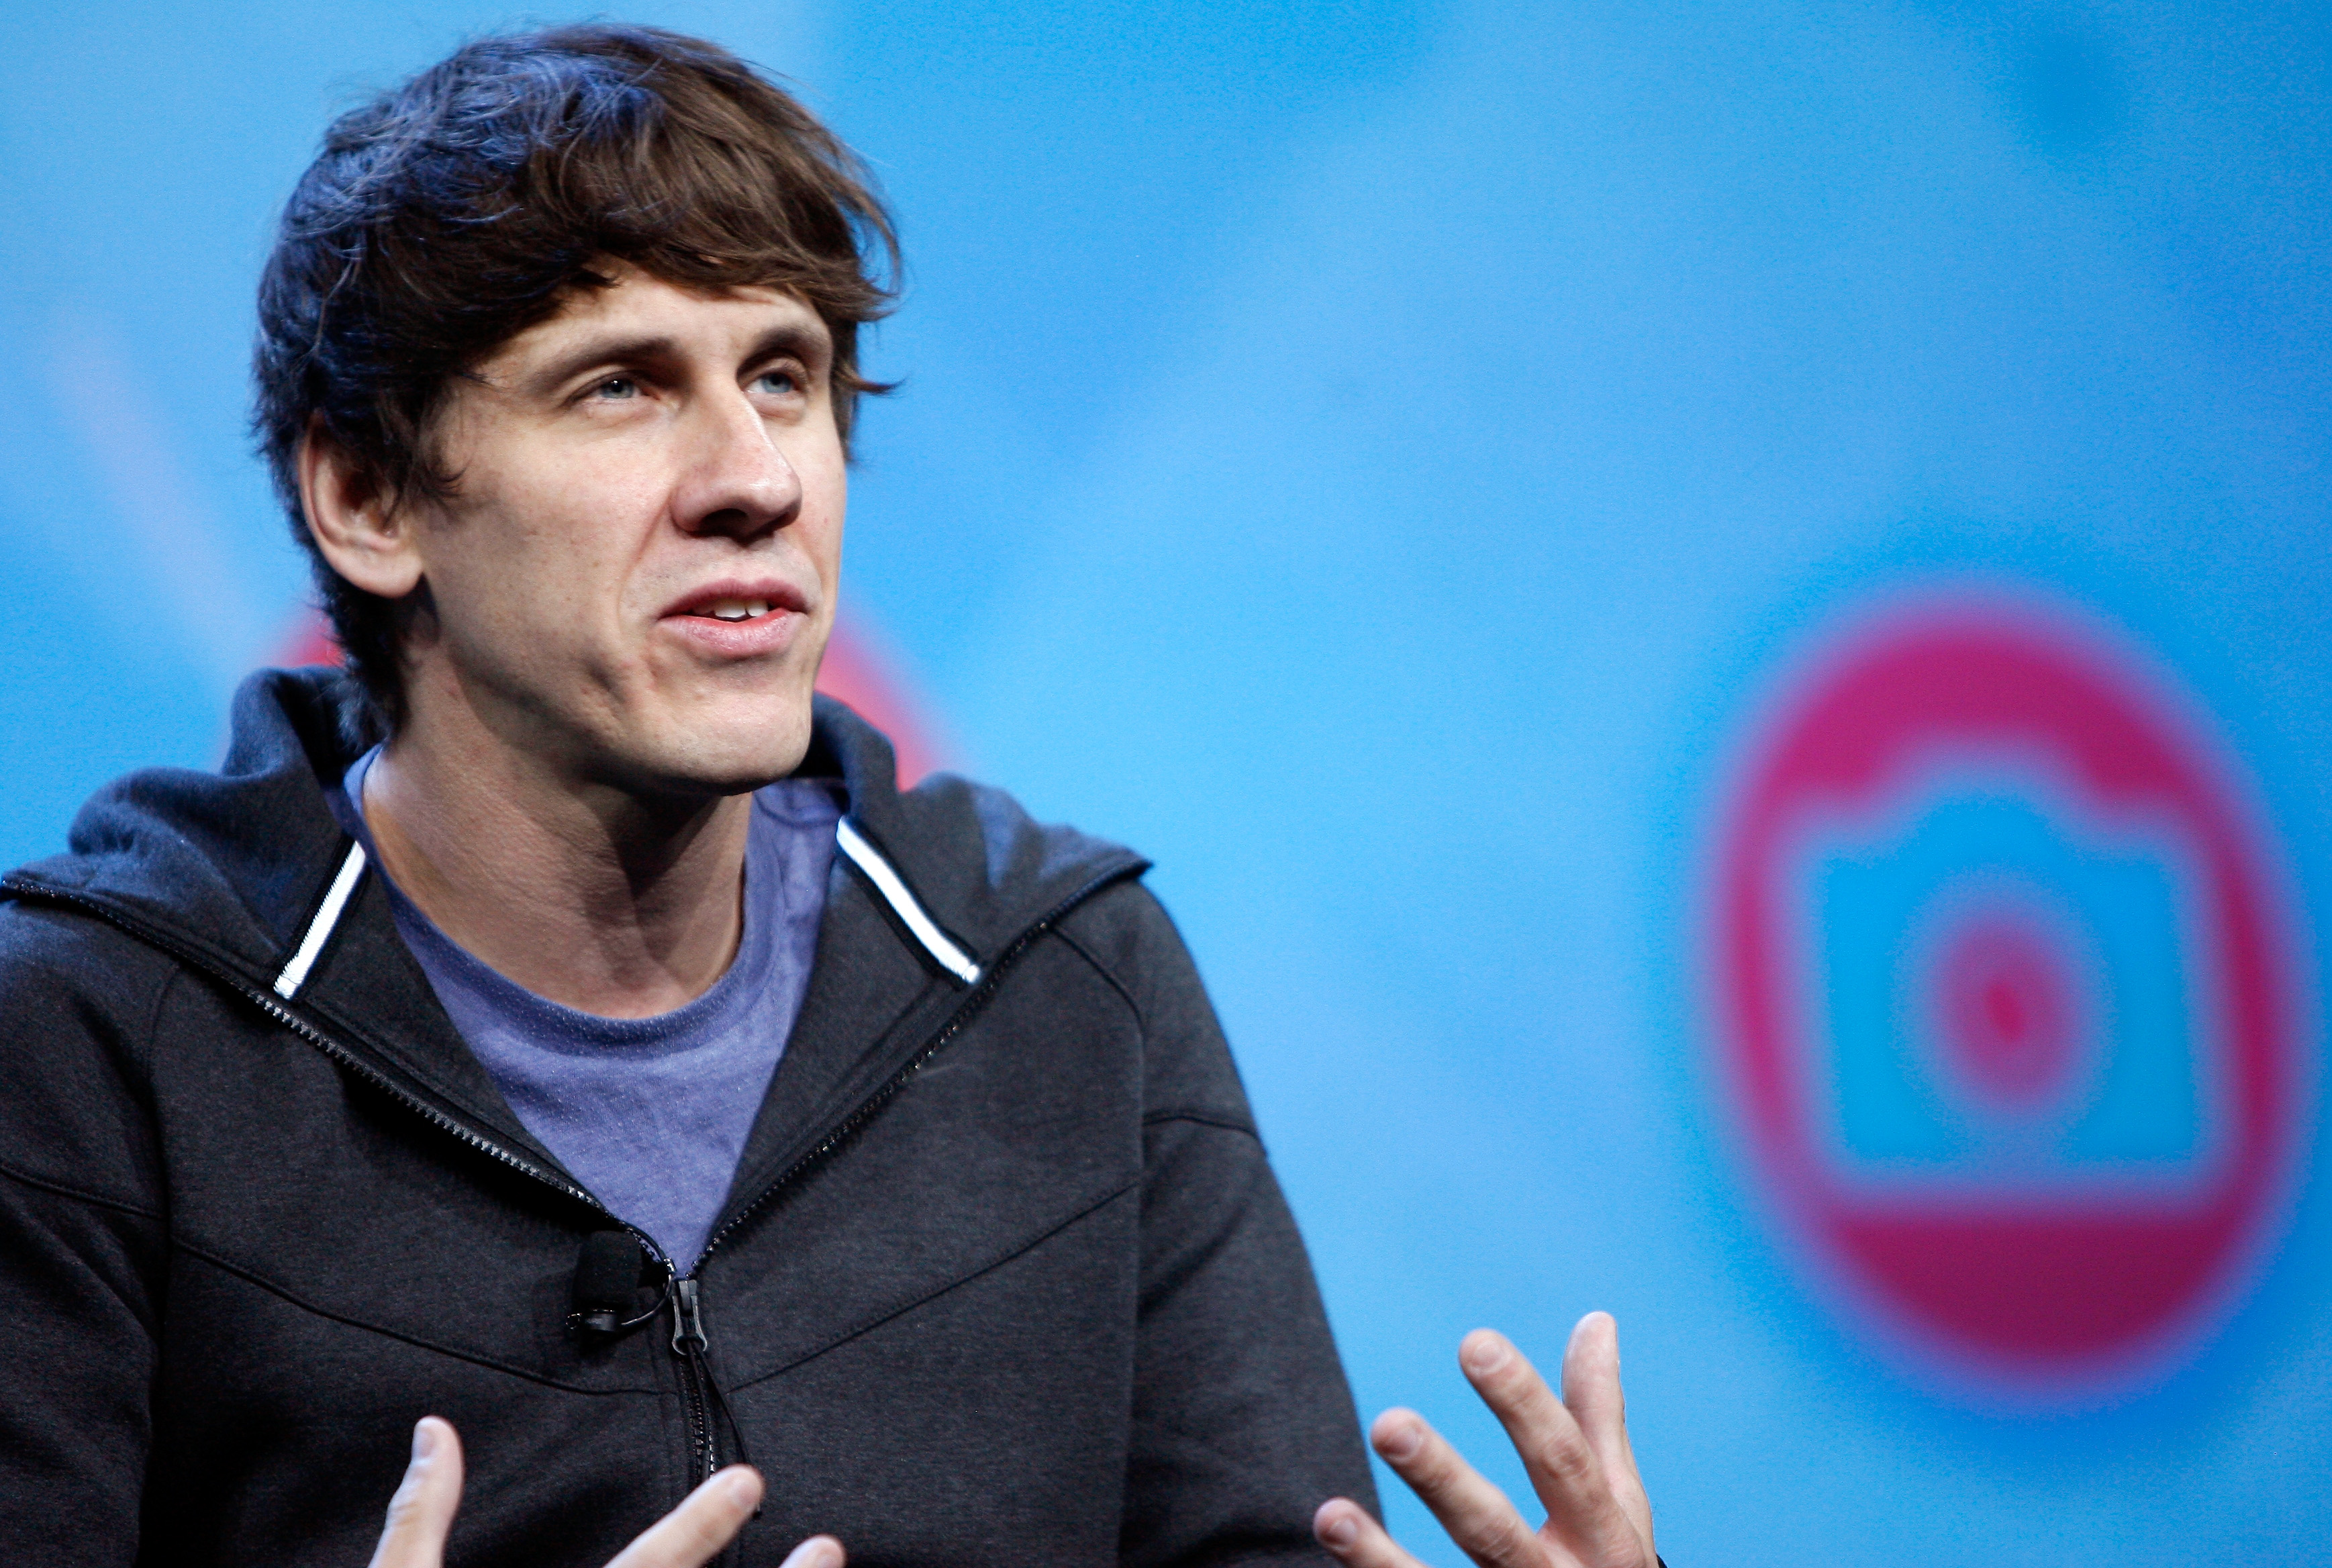 Foursquare co-founder Dennis Crowley speaks during the NikeFuel Forum at Spring Studios on October 15, 2013 in New York City.